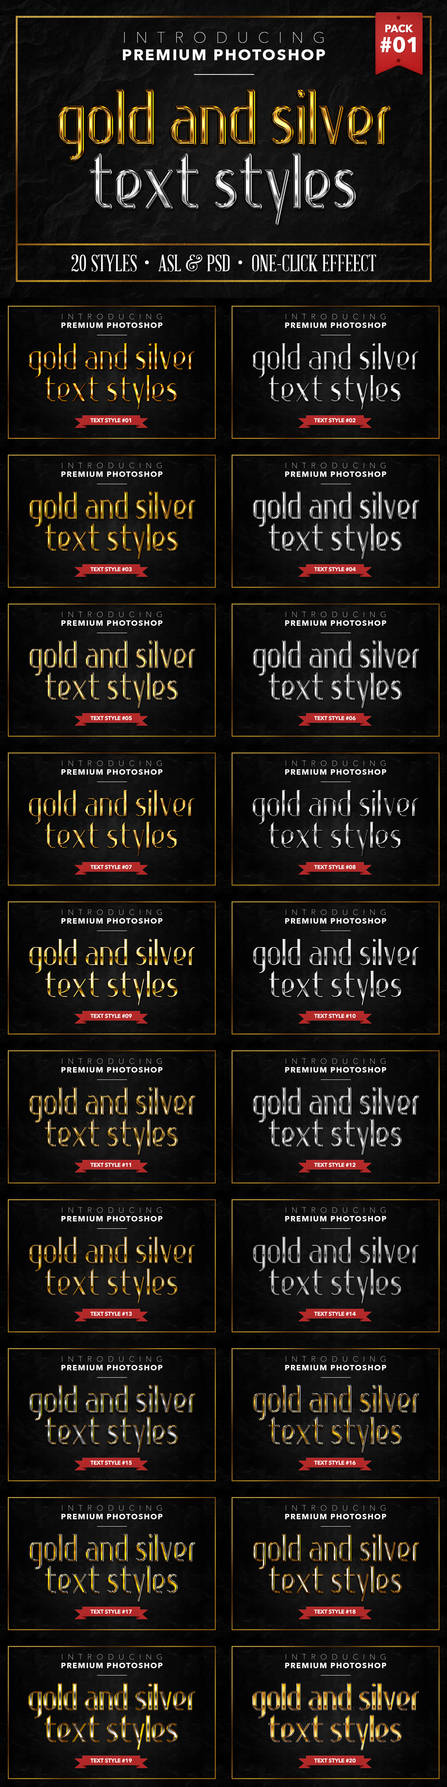 Gold and Silver - Text Styles by ivelt